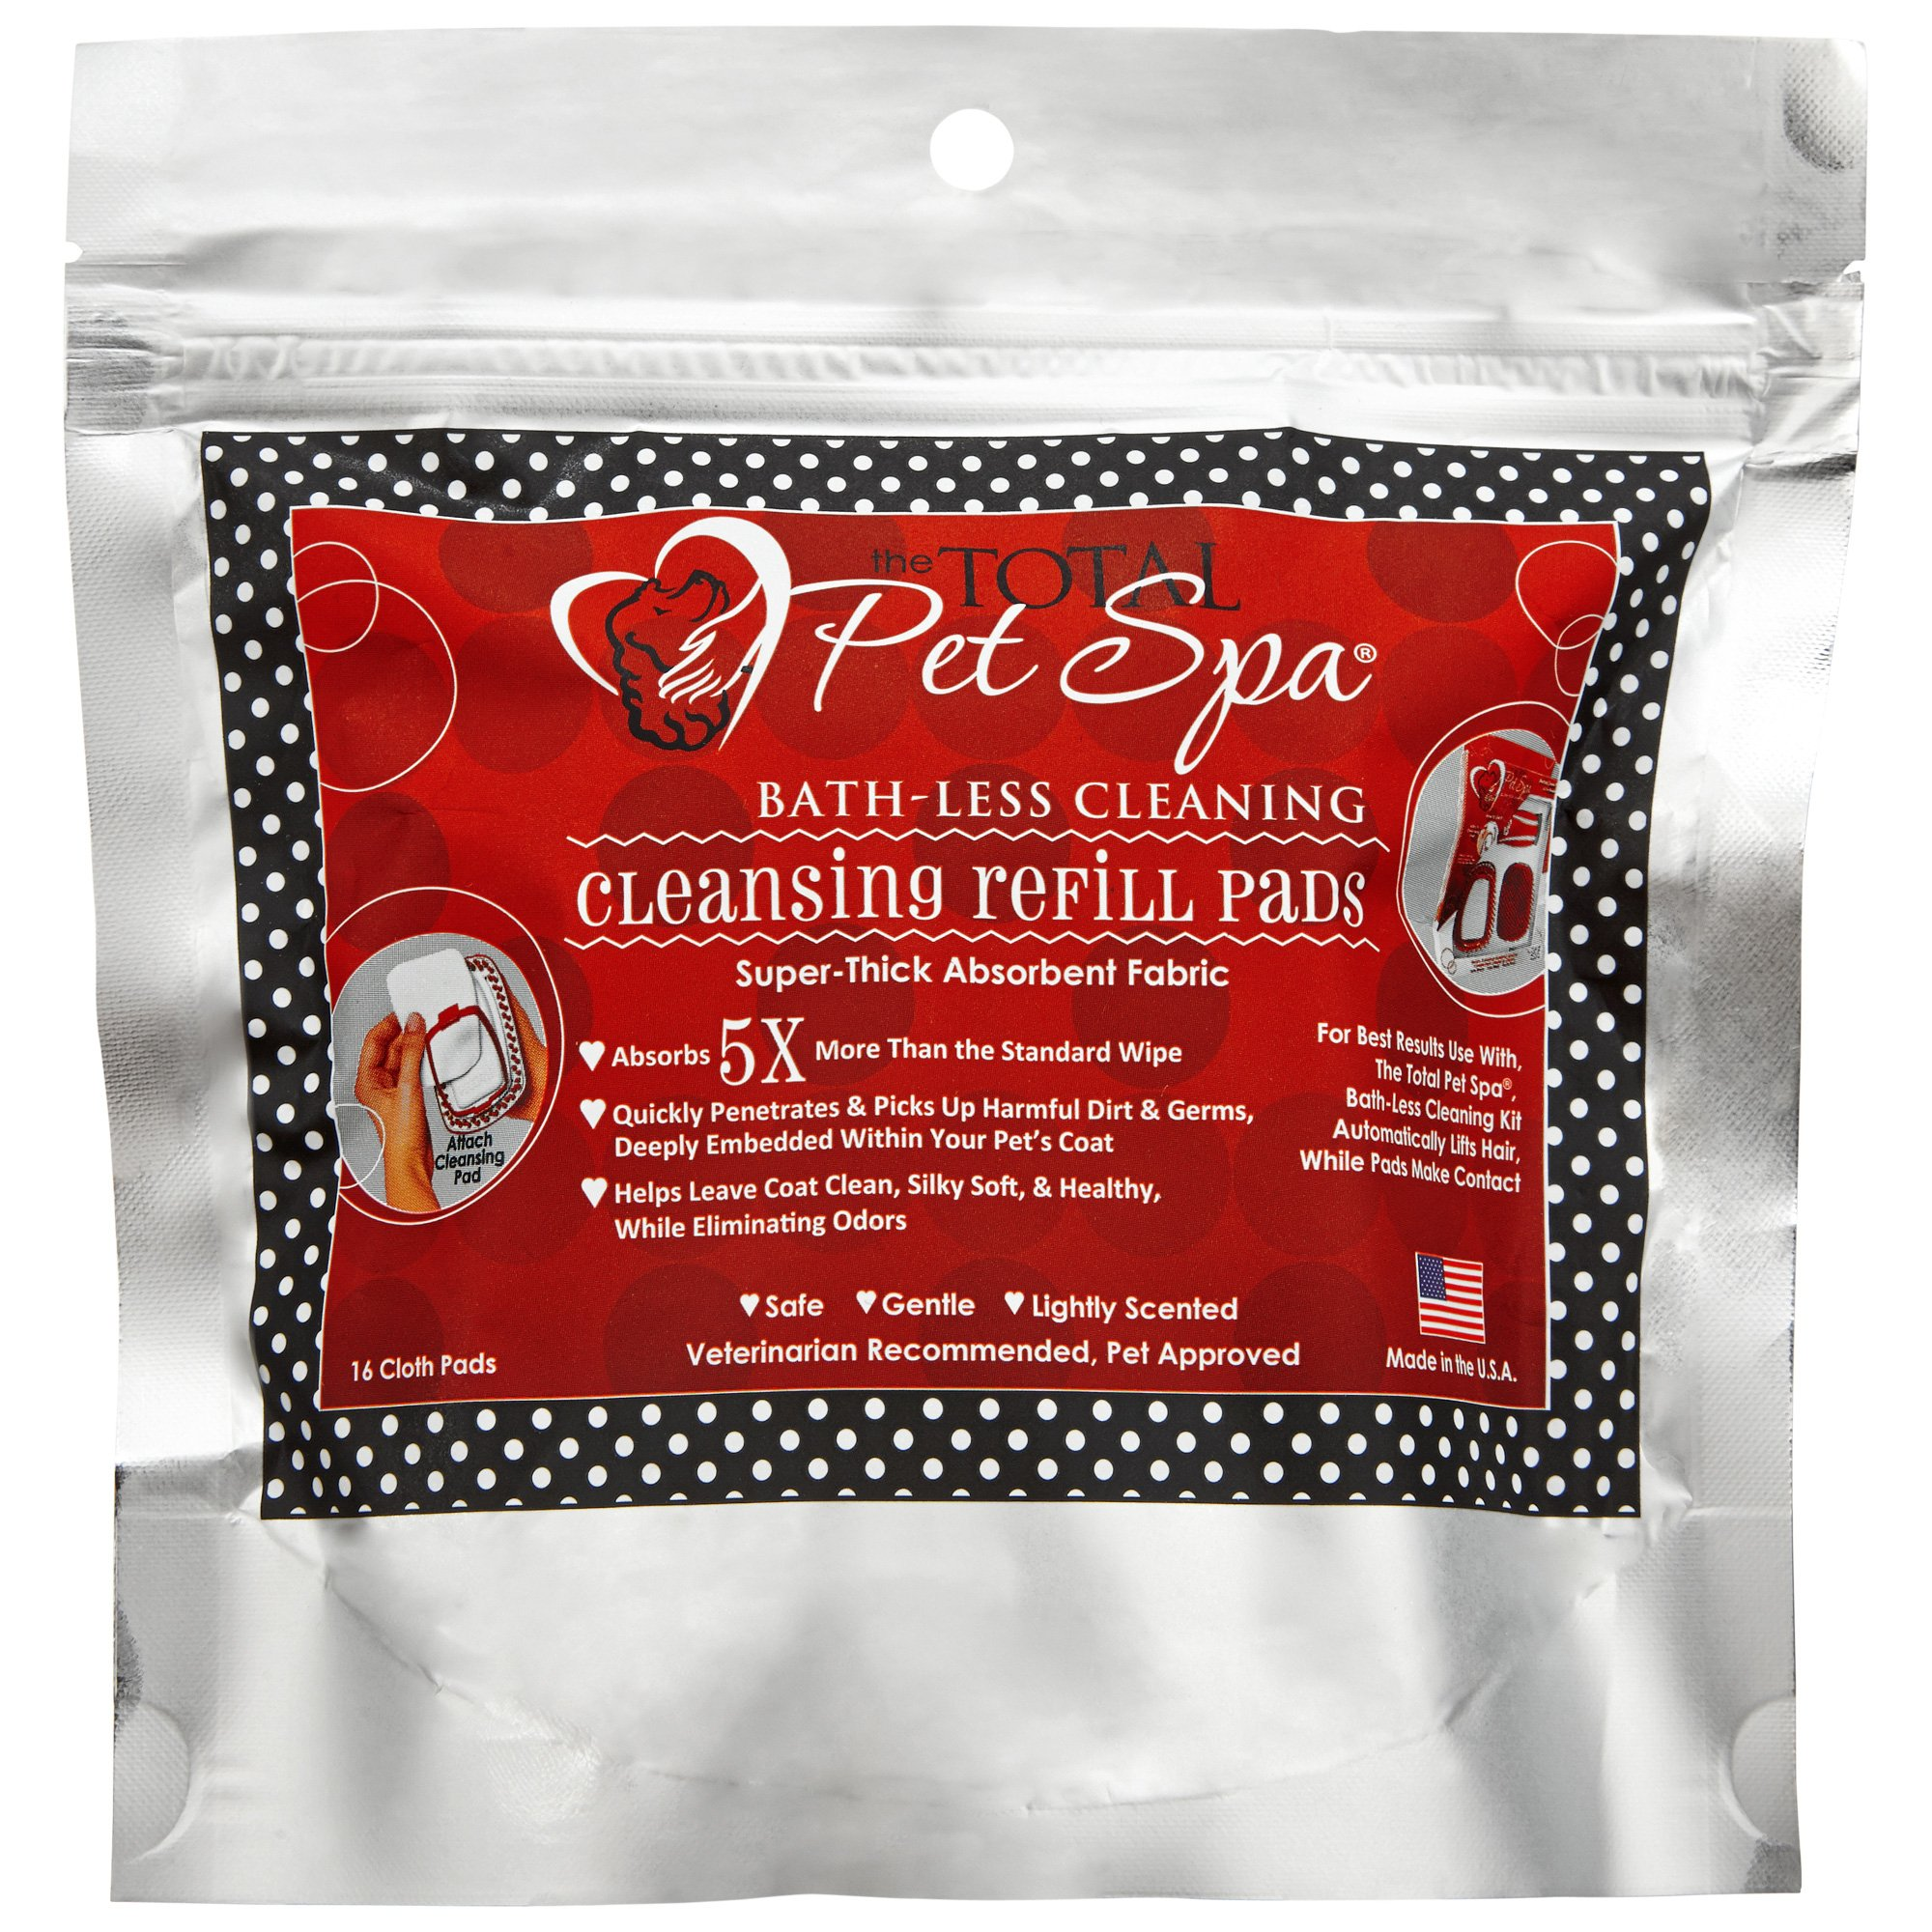 The Total Pet Spa Bathless Cleaning Dog Grooming Refill Wipes | Petco